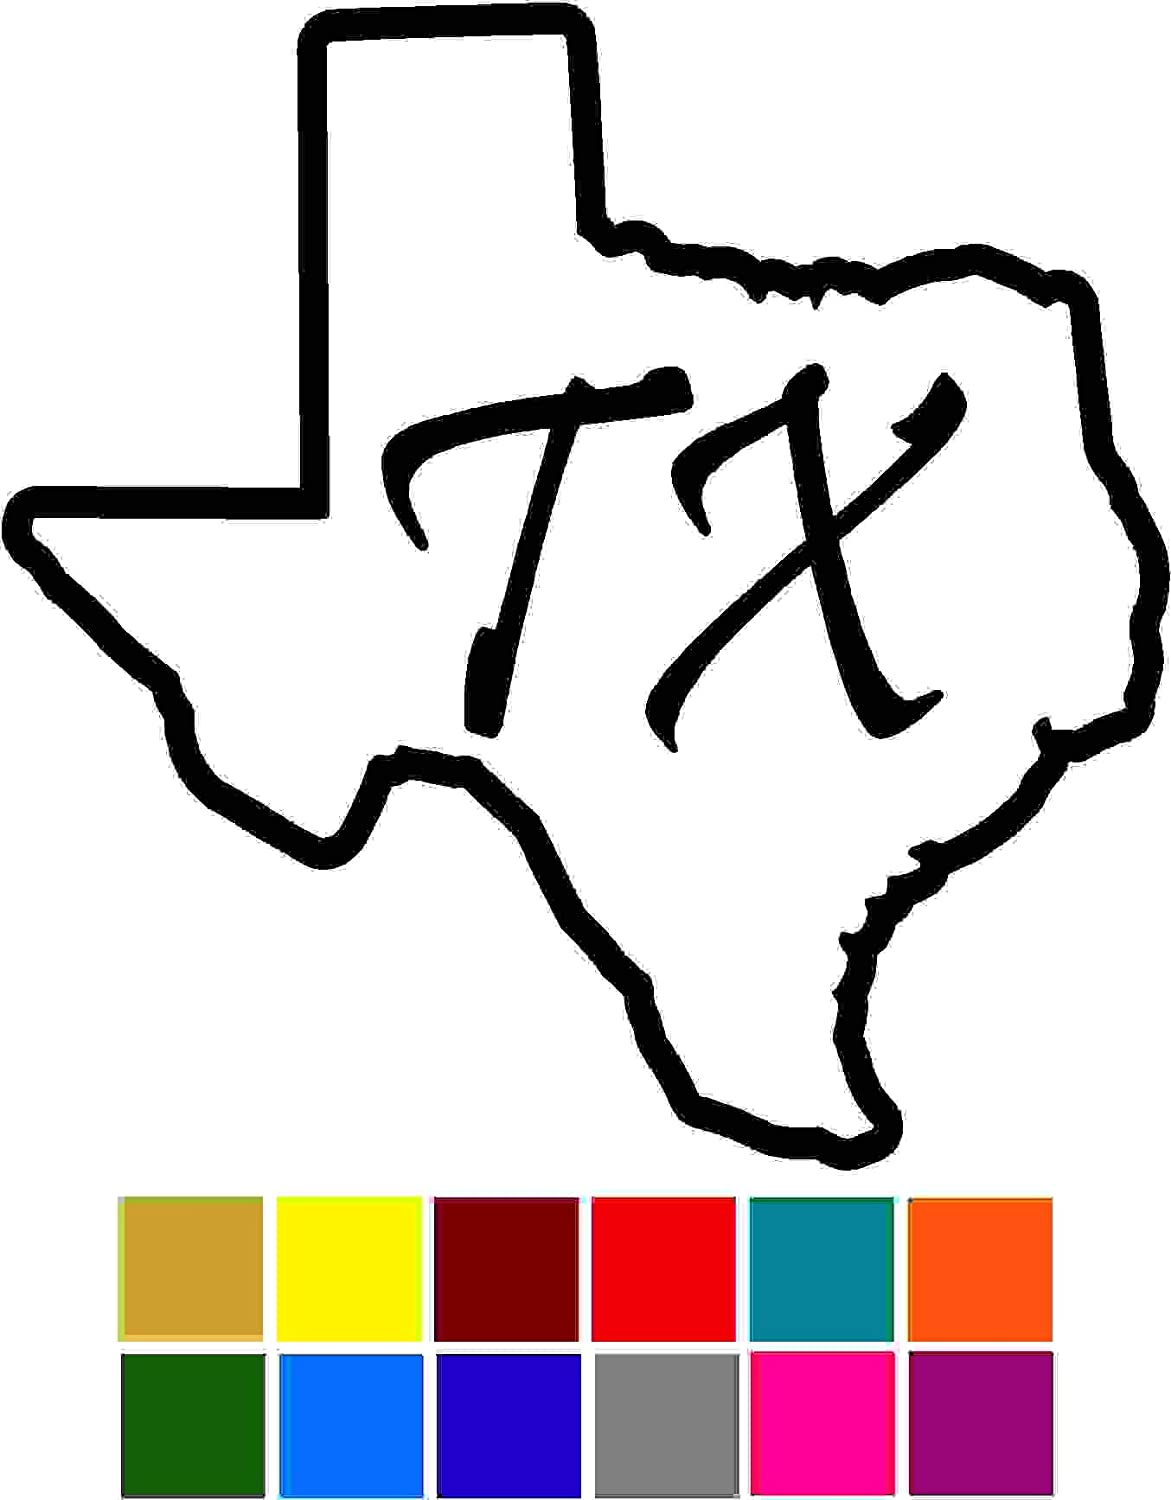 States Texas Decal Sticker Vinyl Car Window Tumblers Wall Laptops Cellphones Phones Tablets Ipads Helmets Motorcycles Computer Towers V and T Gifts